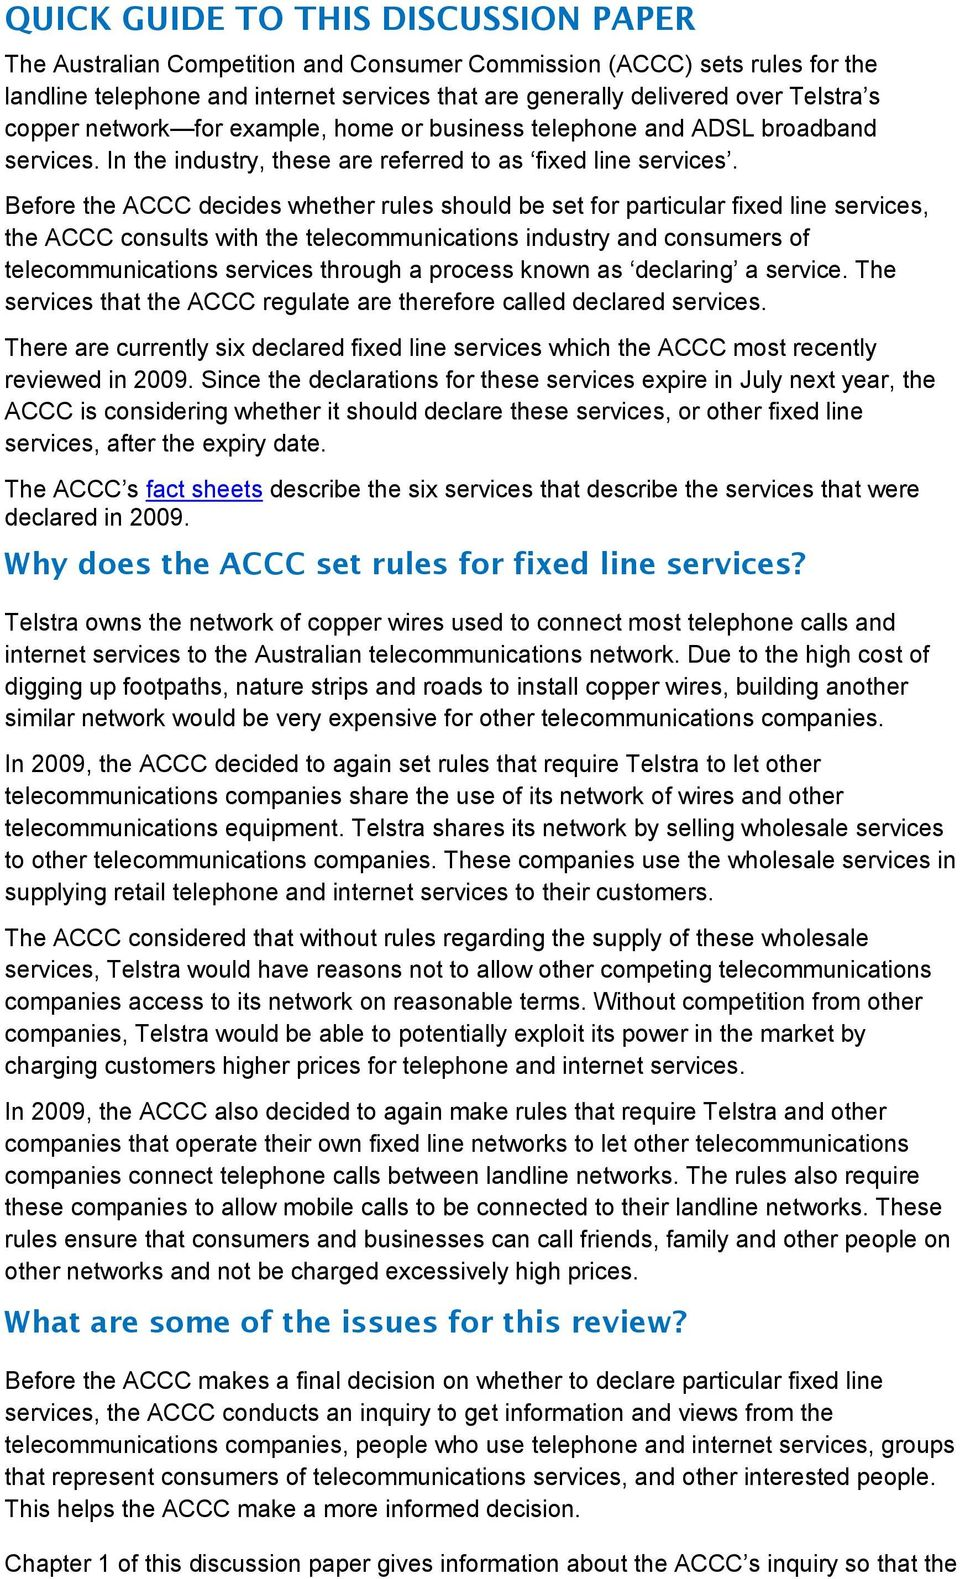 Before the ACCC decides whether rules should be set for particular fixed line services, the ACCC consults with the telecommunications industry and consumers of telecommunications services through a